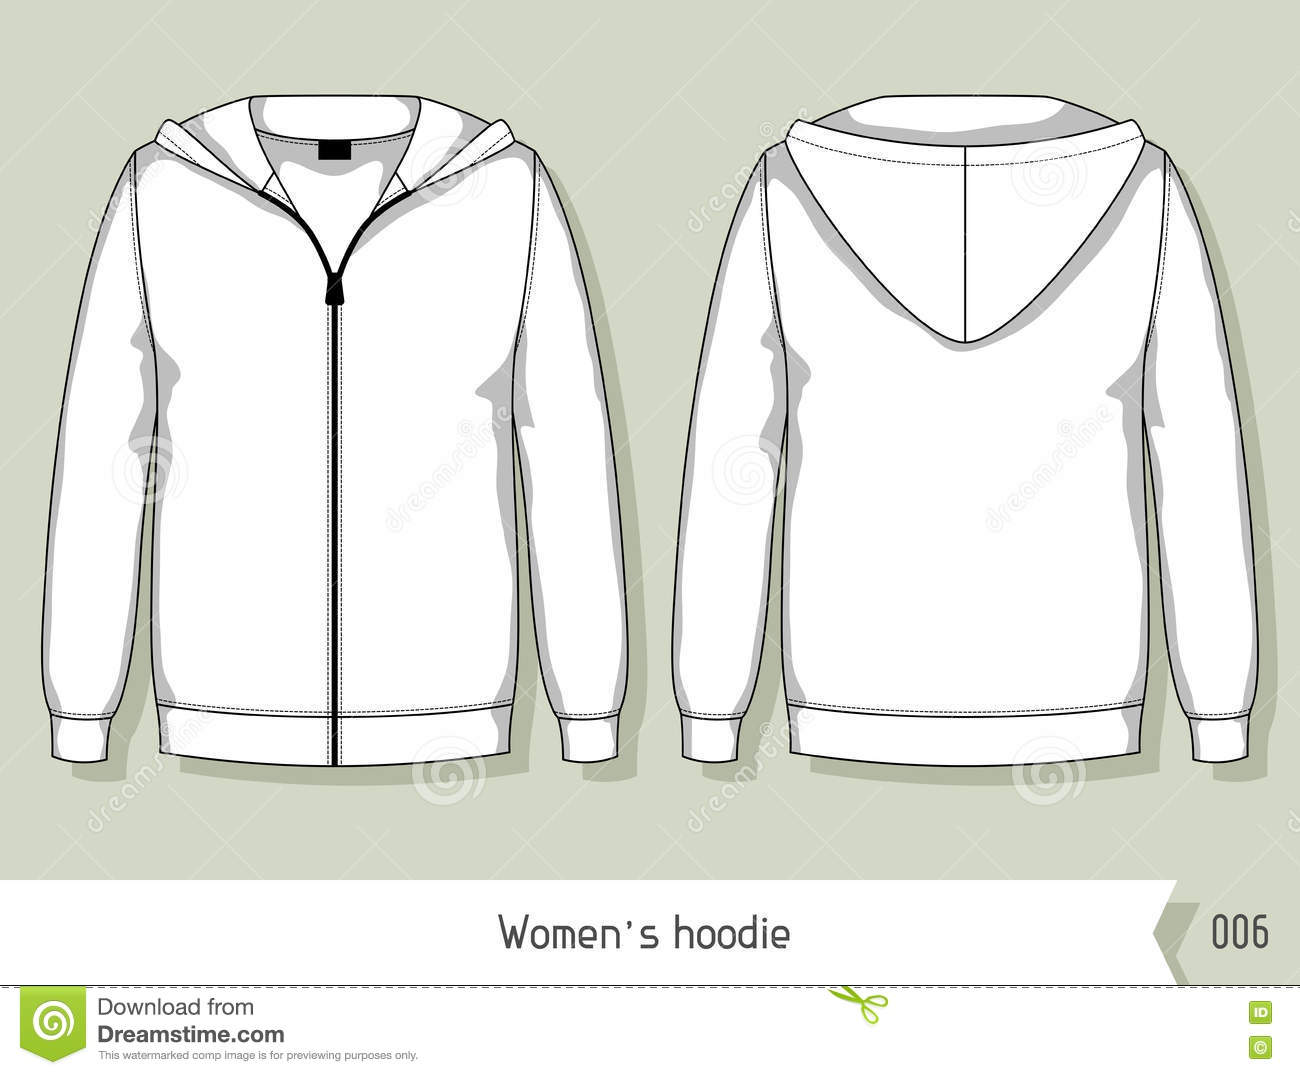 women hoodie template for design easily editable by